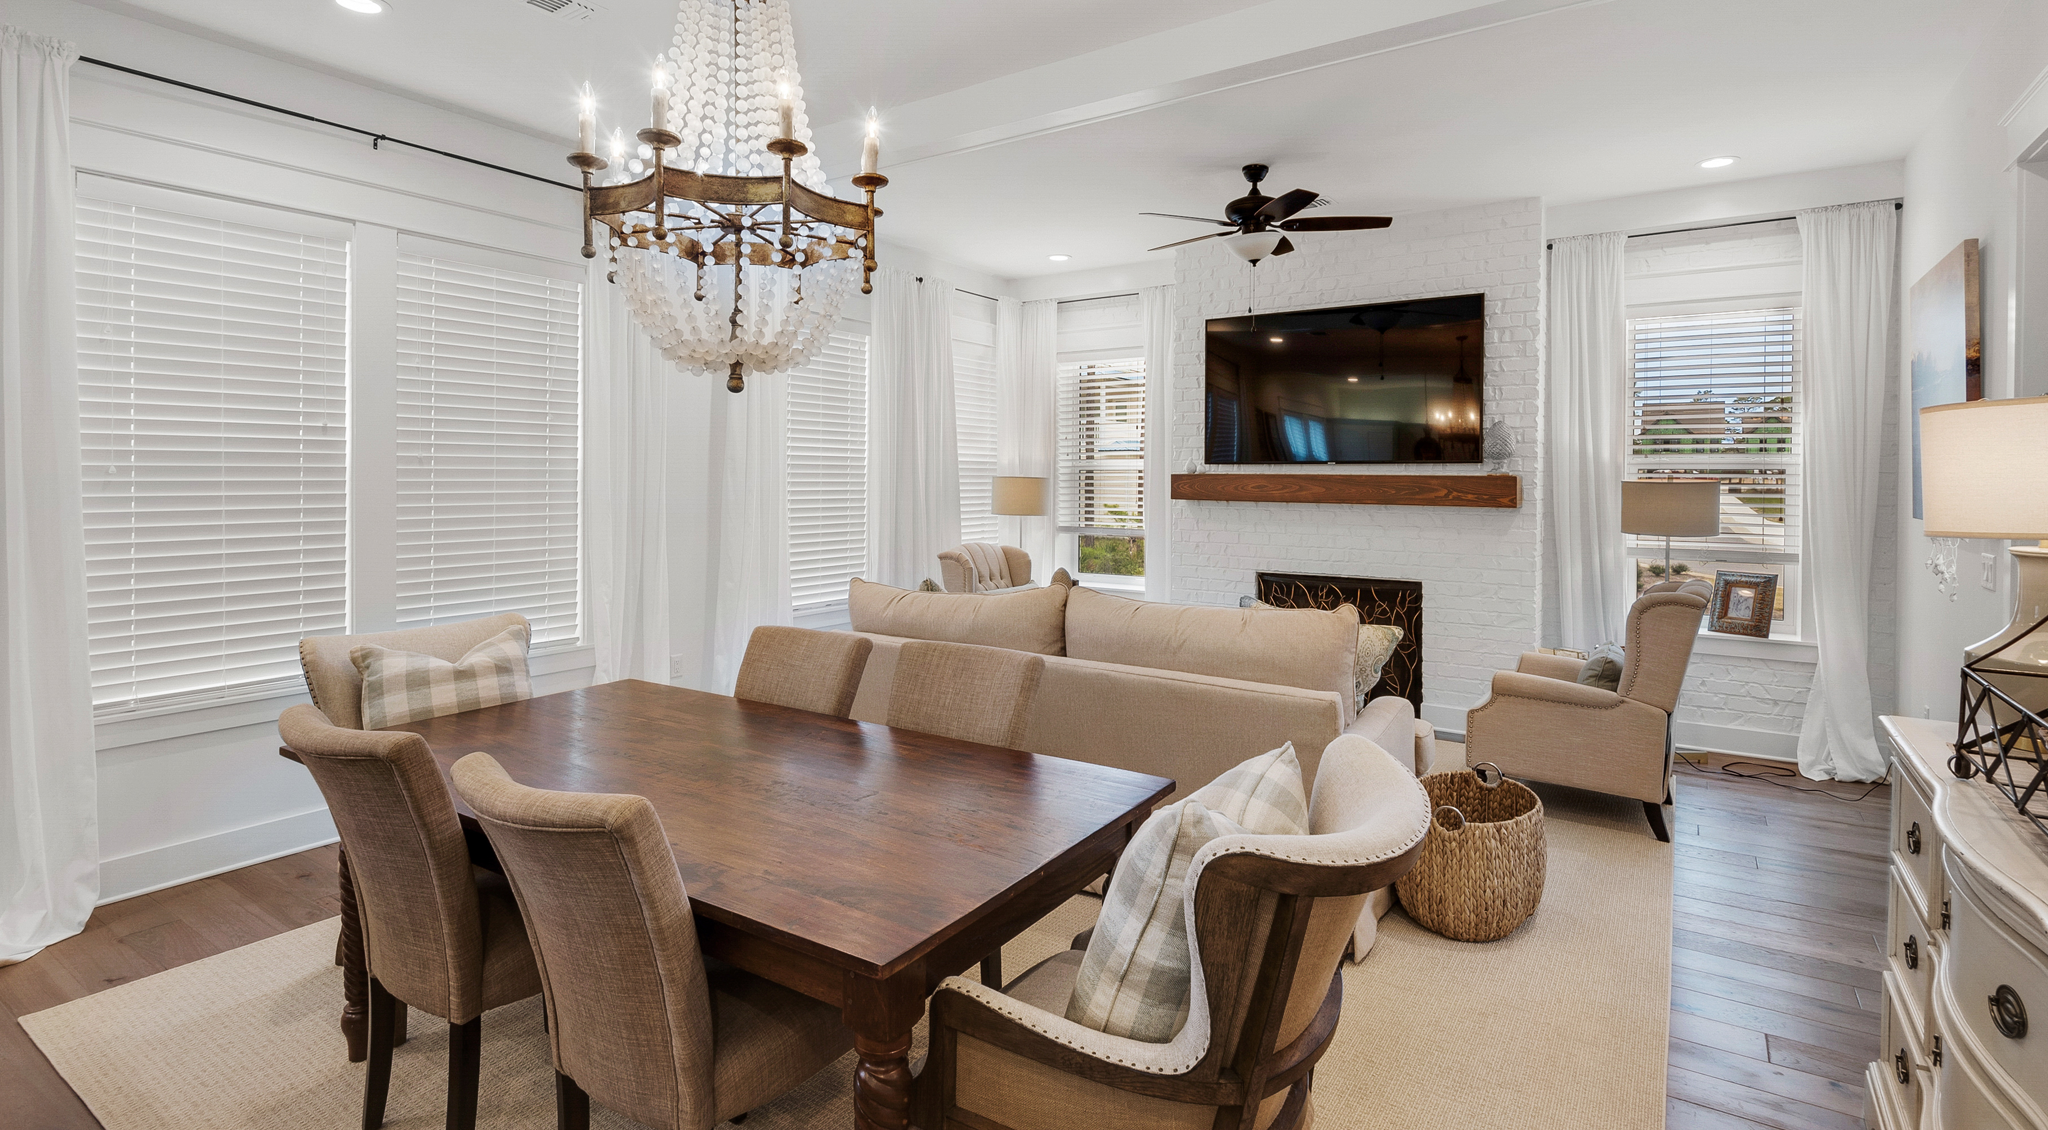 Living Room and dining area in Ridgewalk home